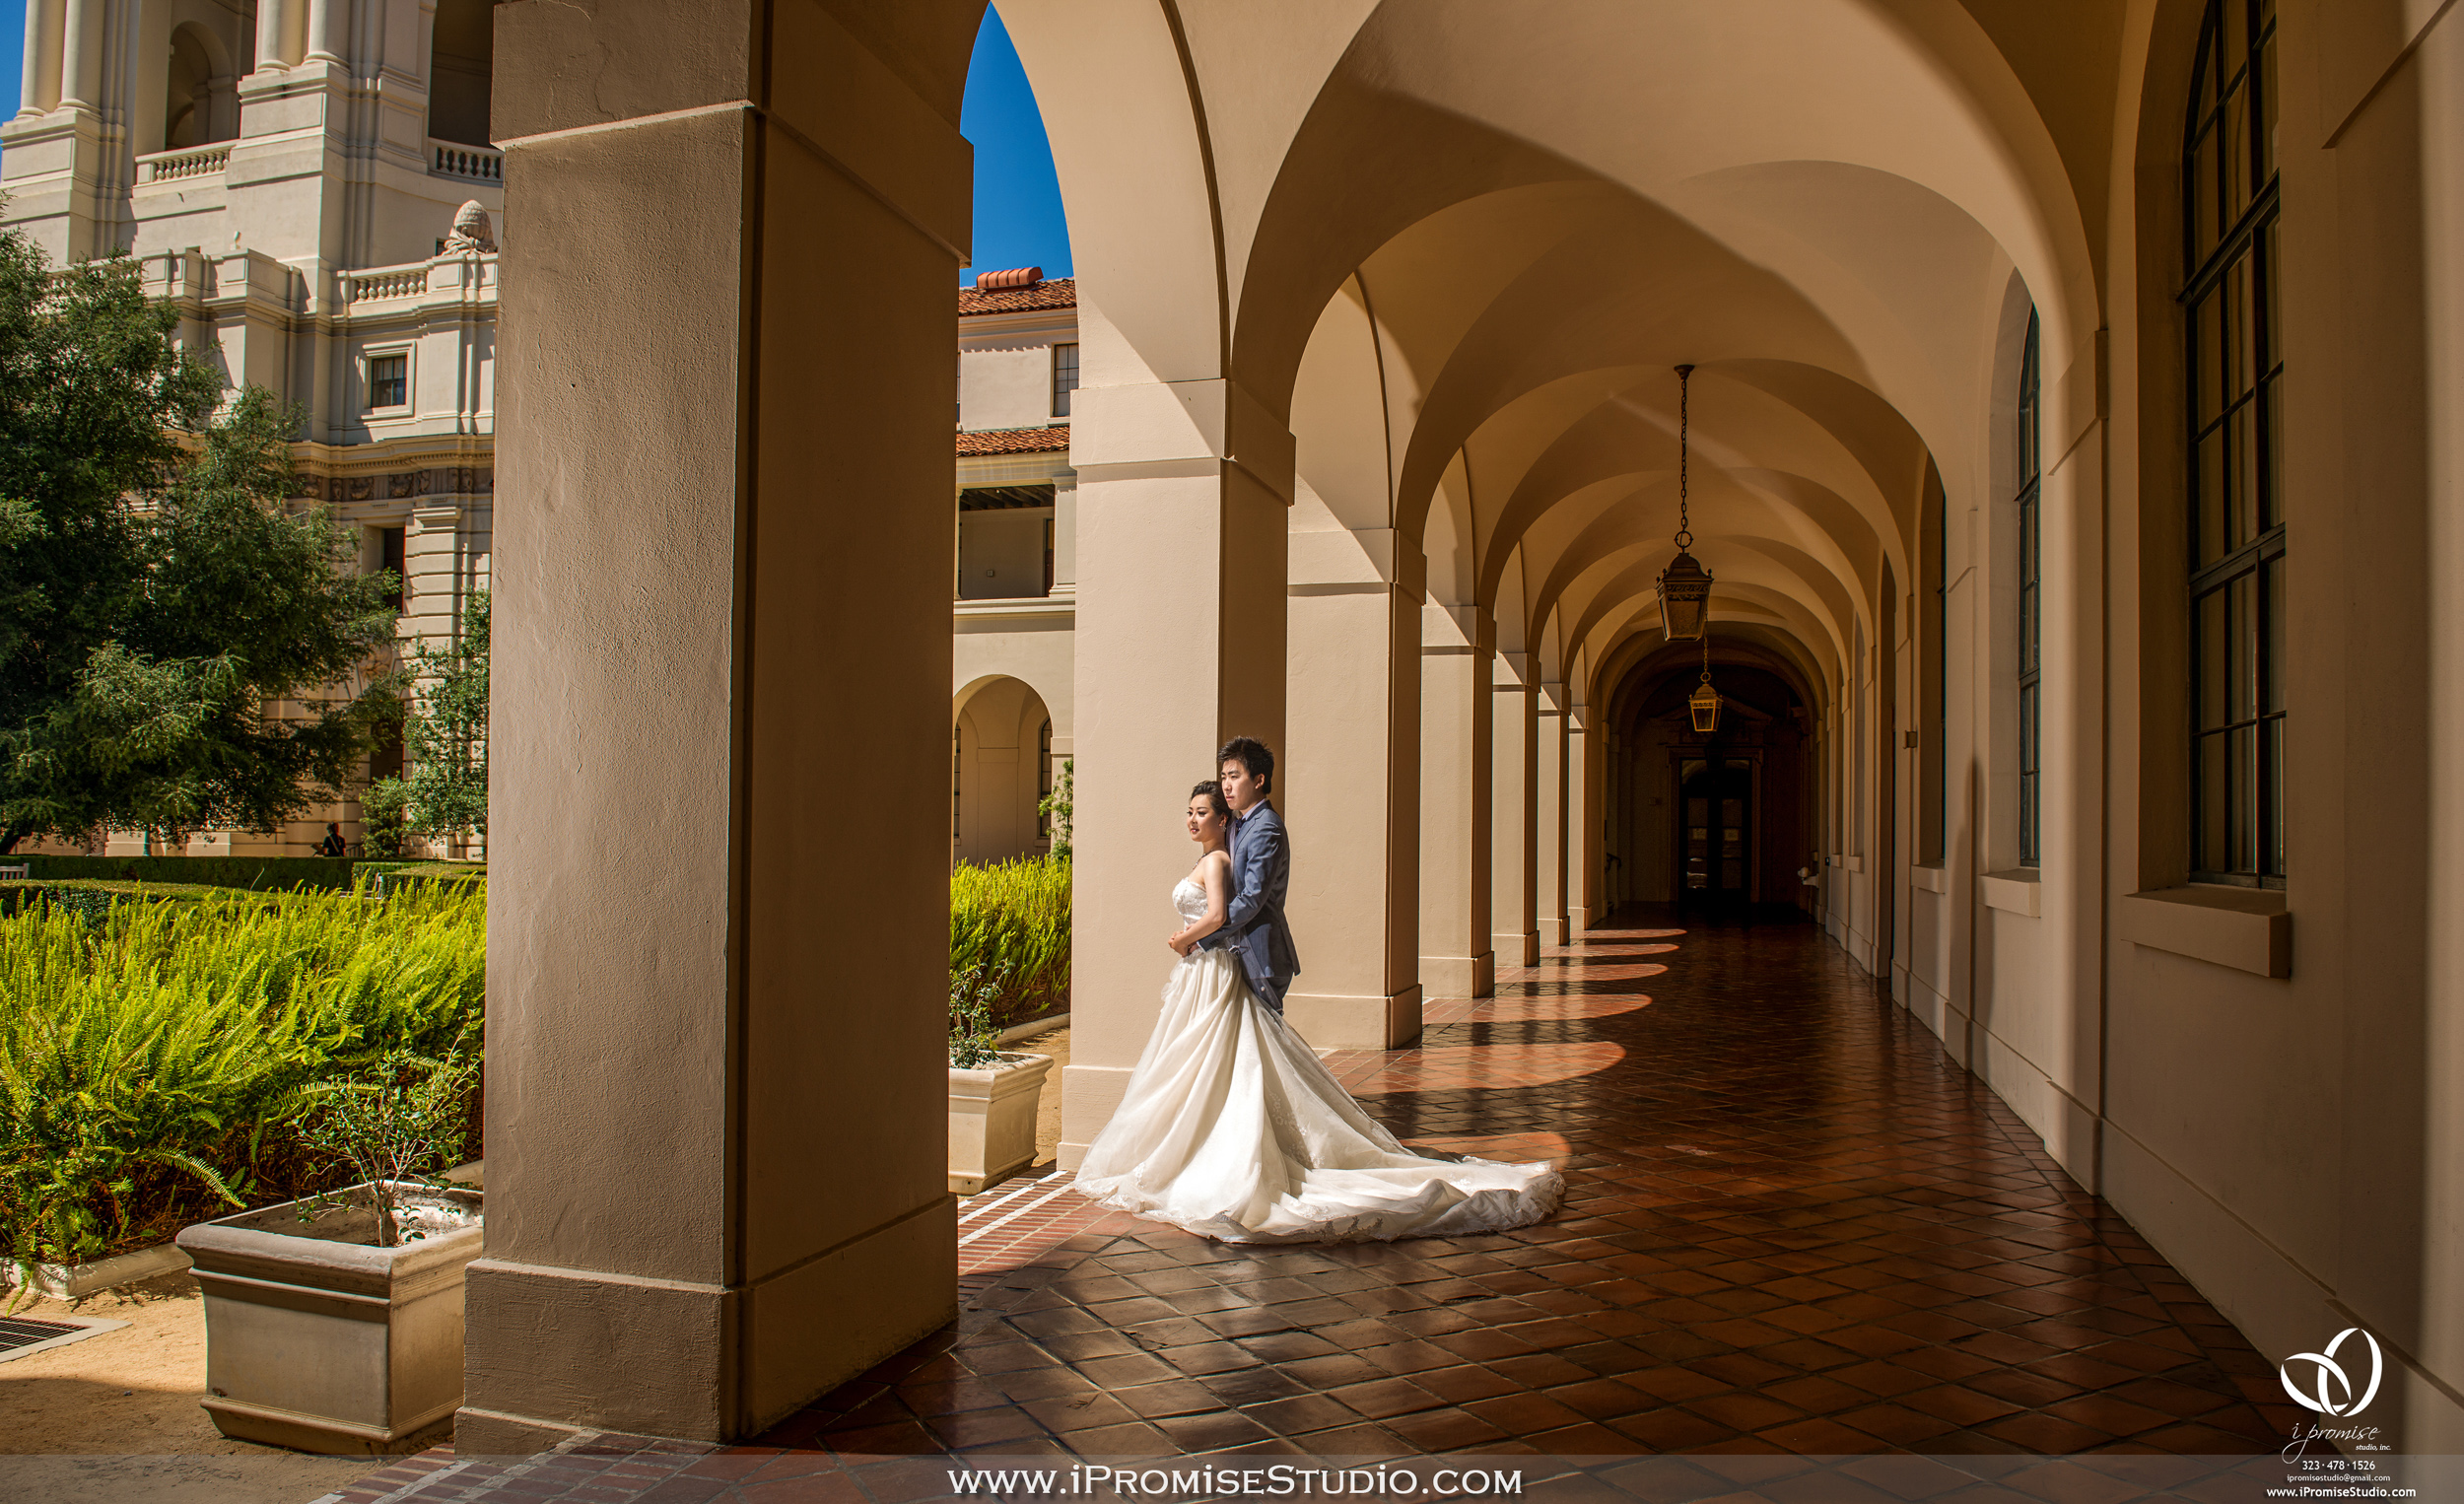 Pasadena Cityhall engagement wedding 08.JPG